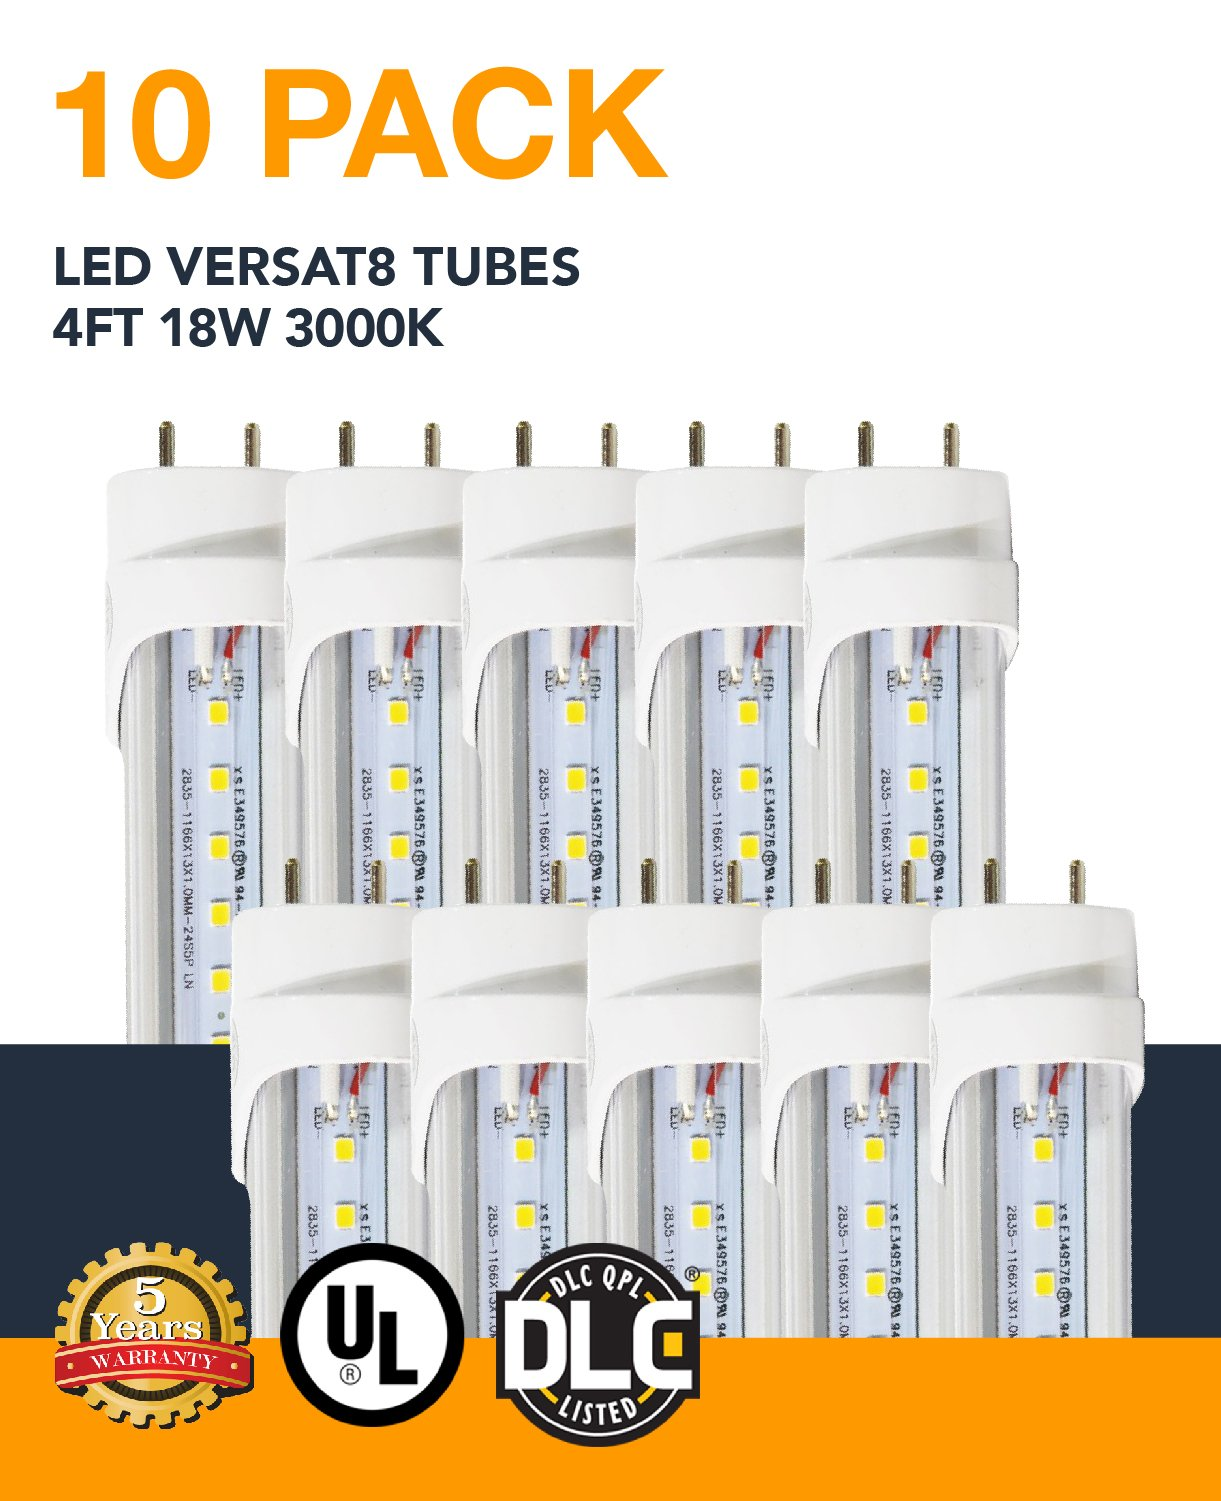 4ft 18W VersaT8 LED Tube, 3000K, Clear, Ballast Compatible or Bypass, UL and DLC Qualified, 5 Year Warranty, 10 Pack